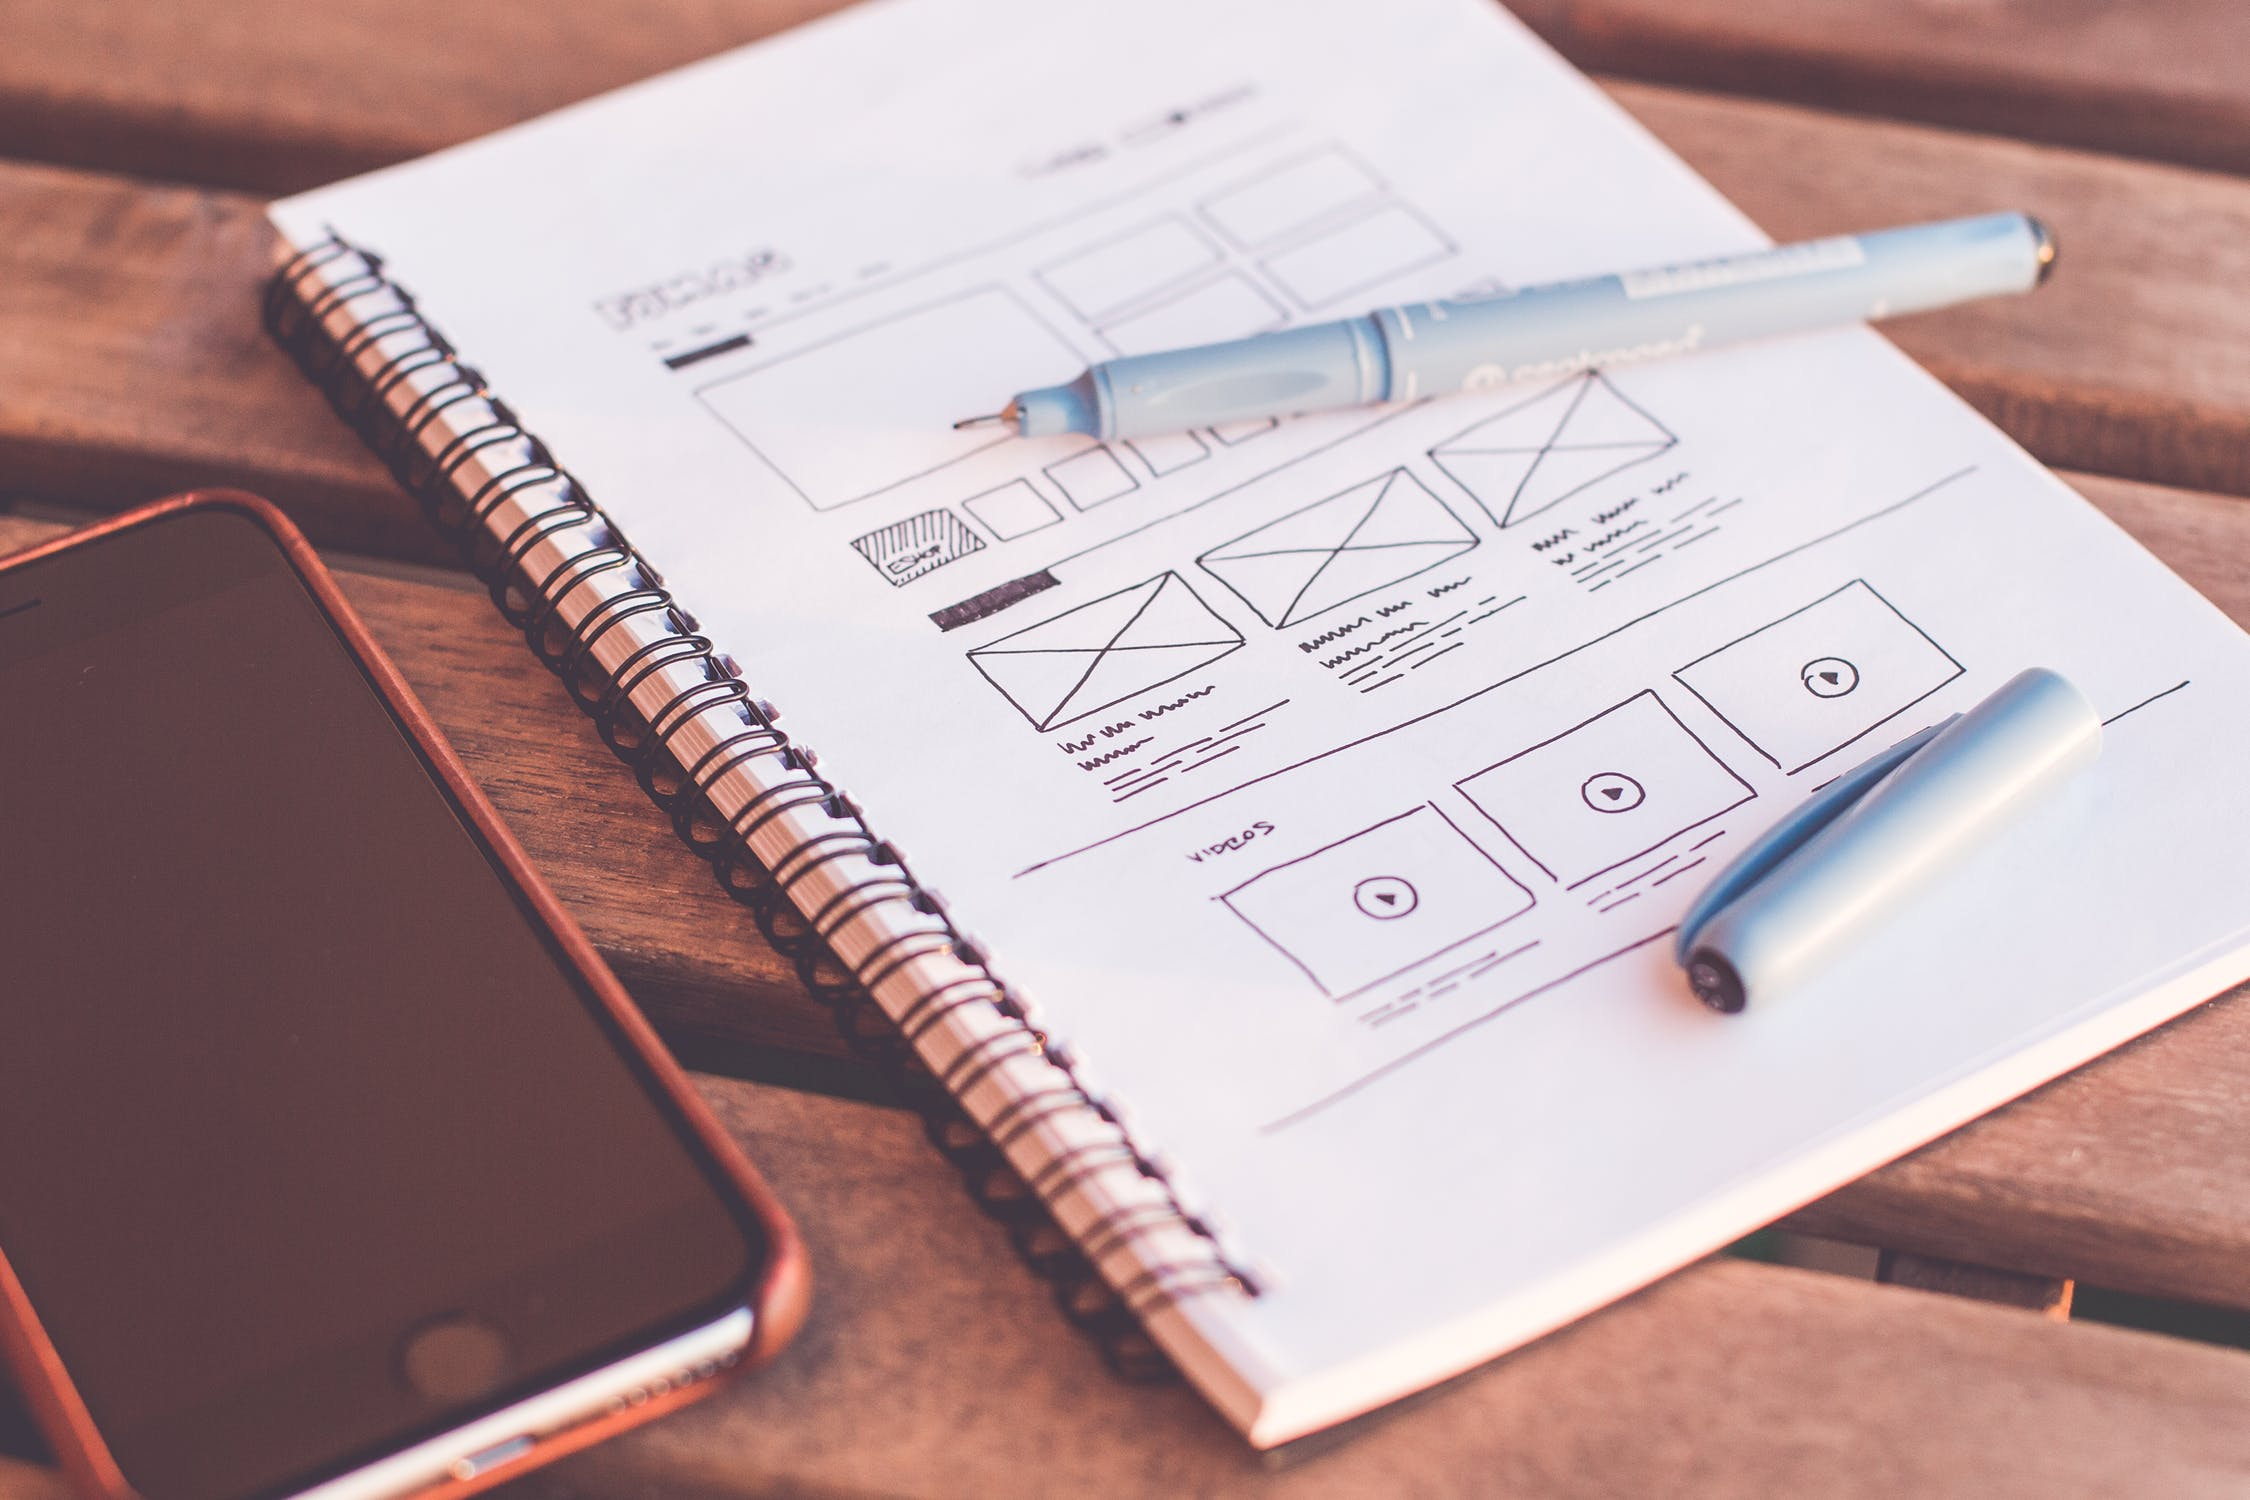 UX Design by VISEO